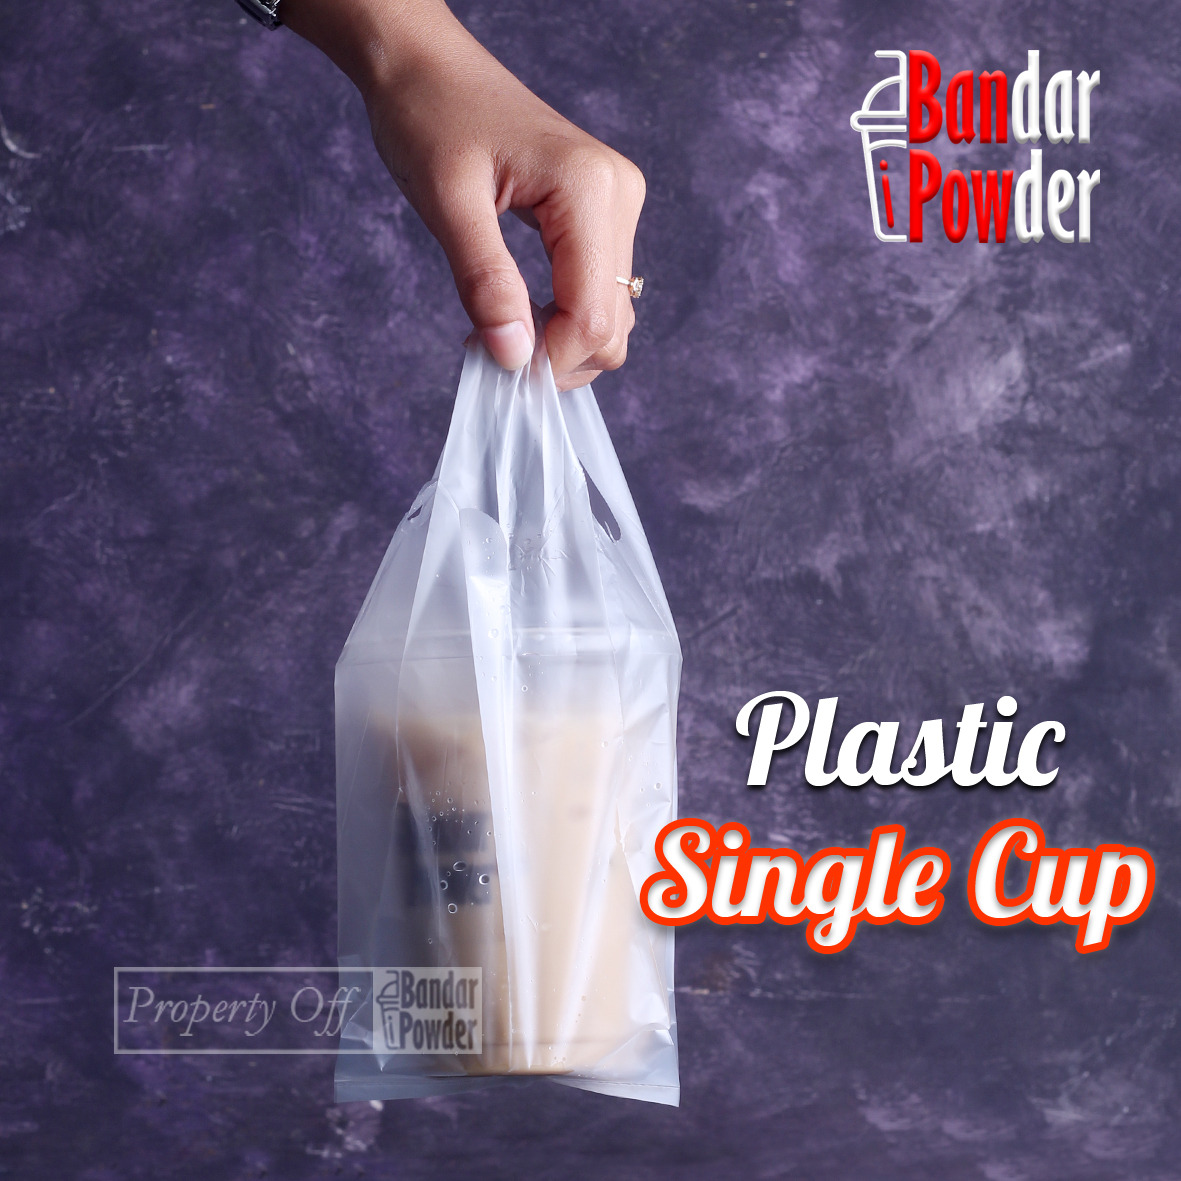 Jual Plastik Kresek | Take Away Single Cup Bubble Drink Jakarta